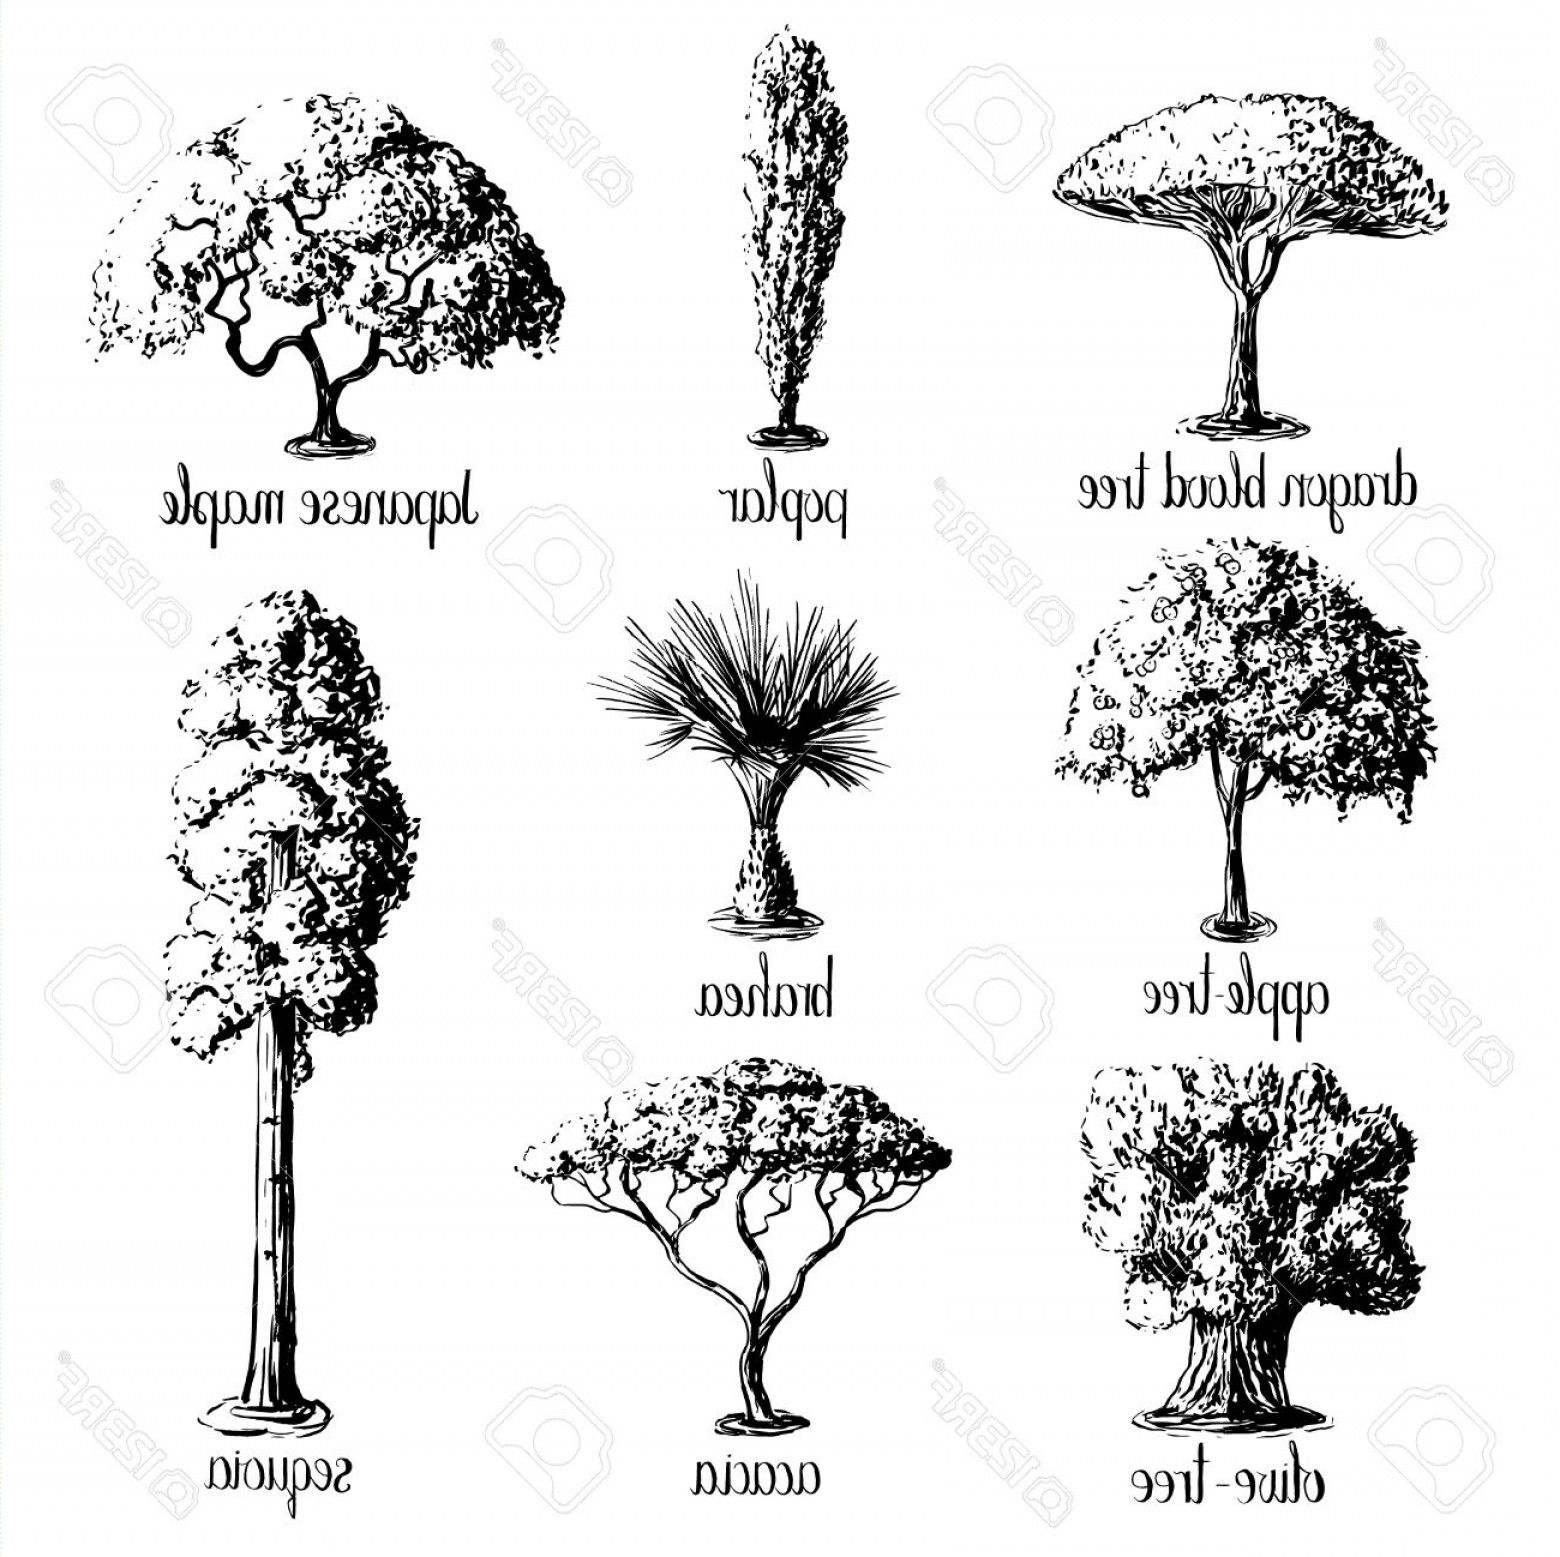 Apple Tree Vector Black: Photostock Vector Set Of Hand Drawn Tree Sketches Apple Tree Olive Japanese Maple Acacia Brahea Poplar Sequoia Dragon